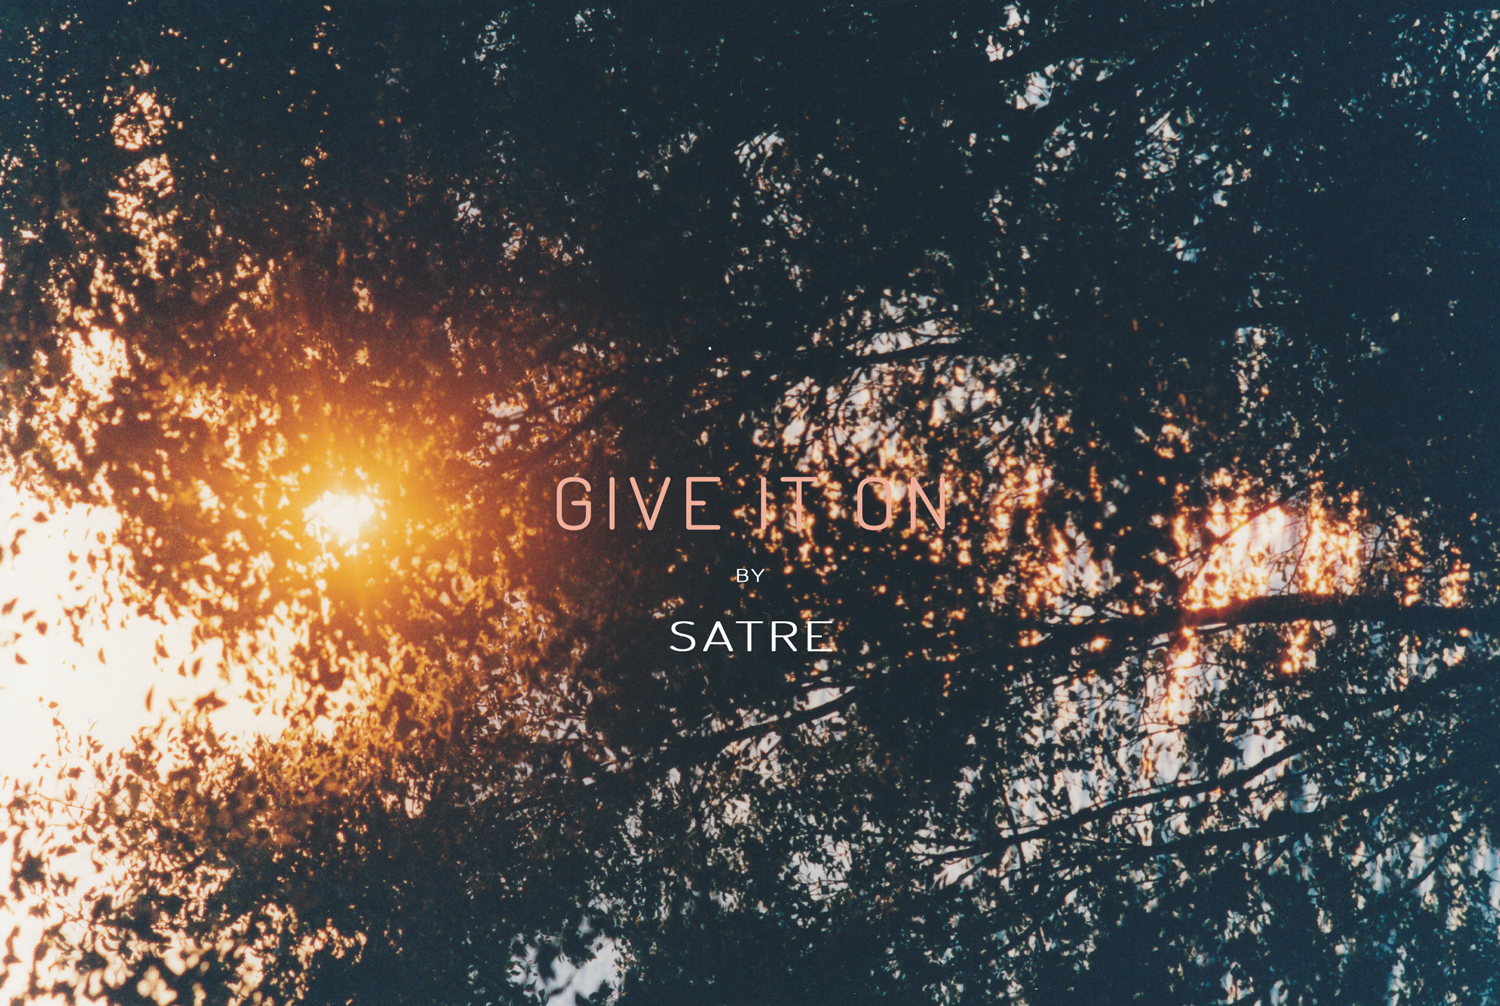 Give-It-On-Front-1500-geir-satre.jpg